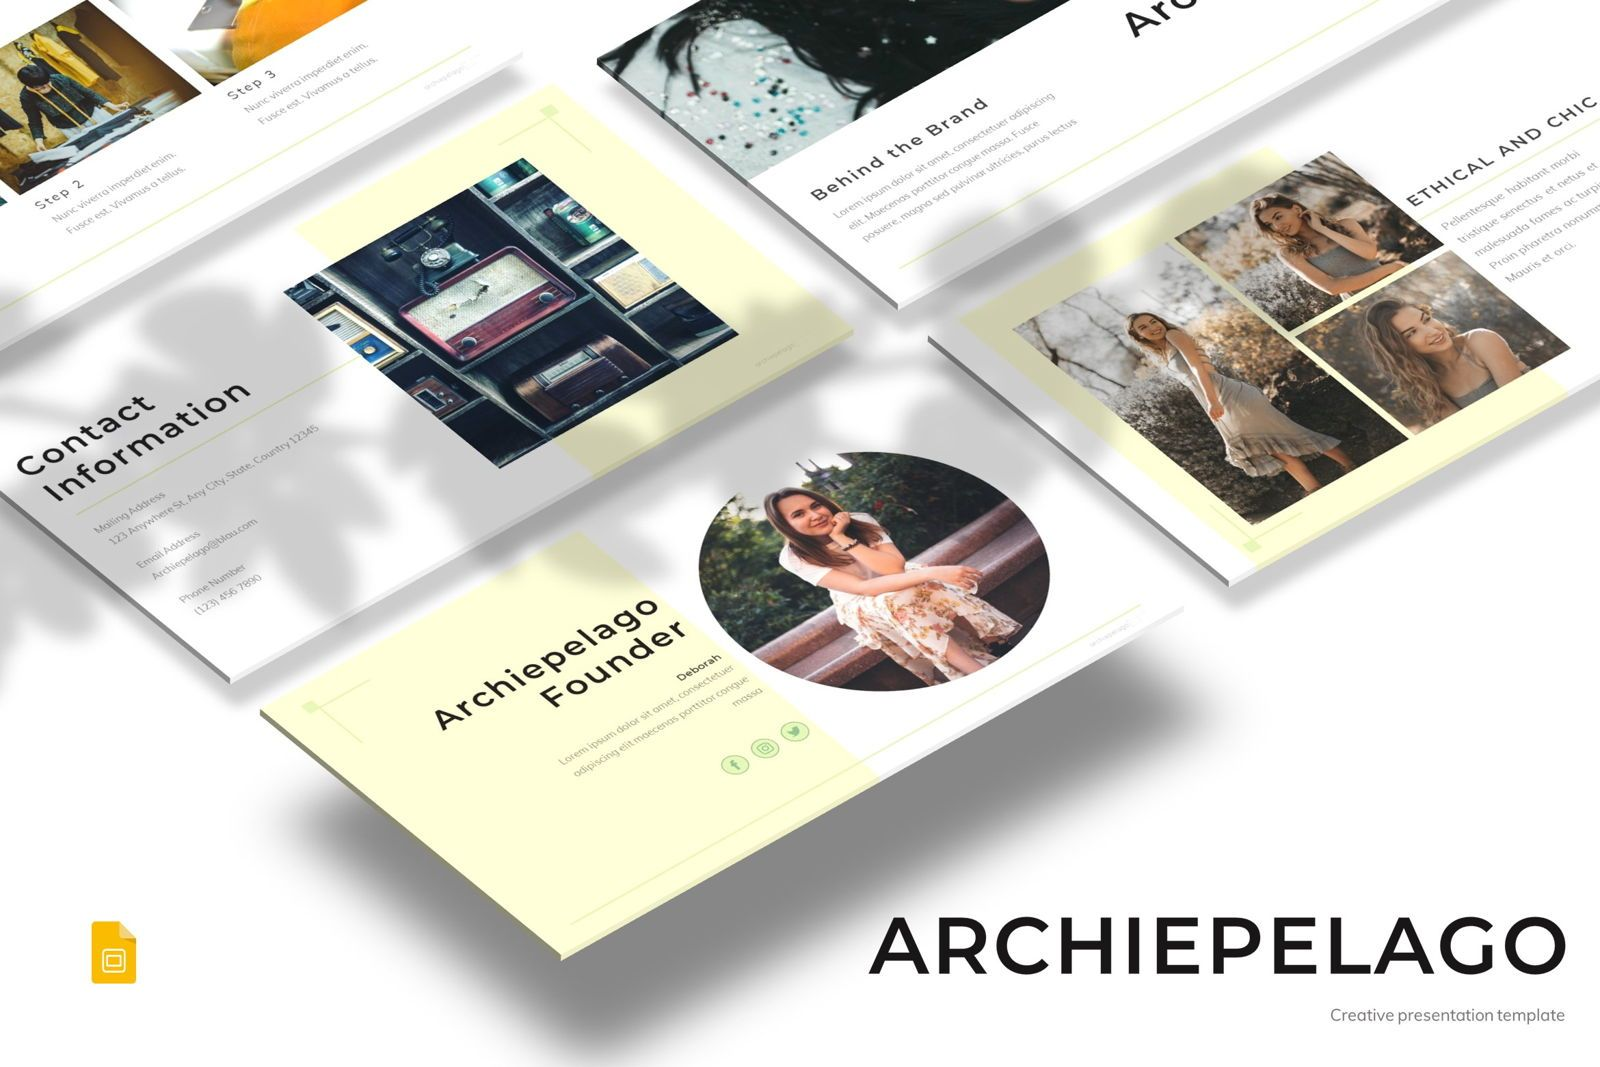 Archiepelago - Google Slides Template, 07701, Presentation Templates — PoweredTemplate.com